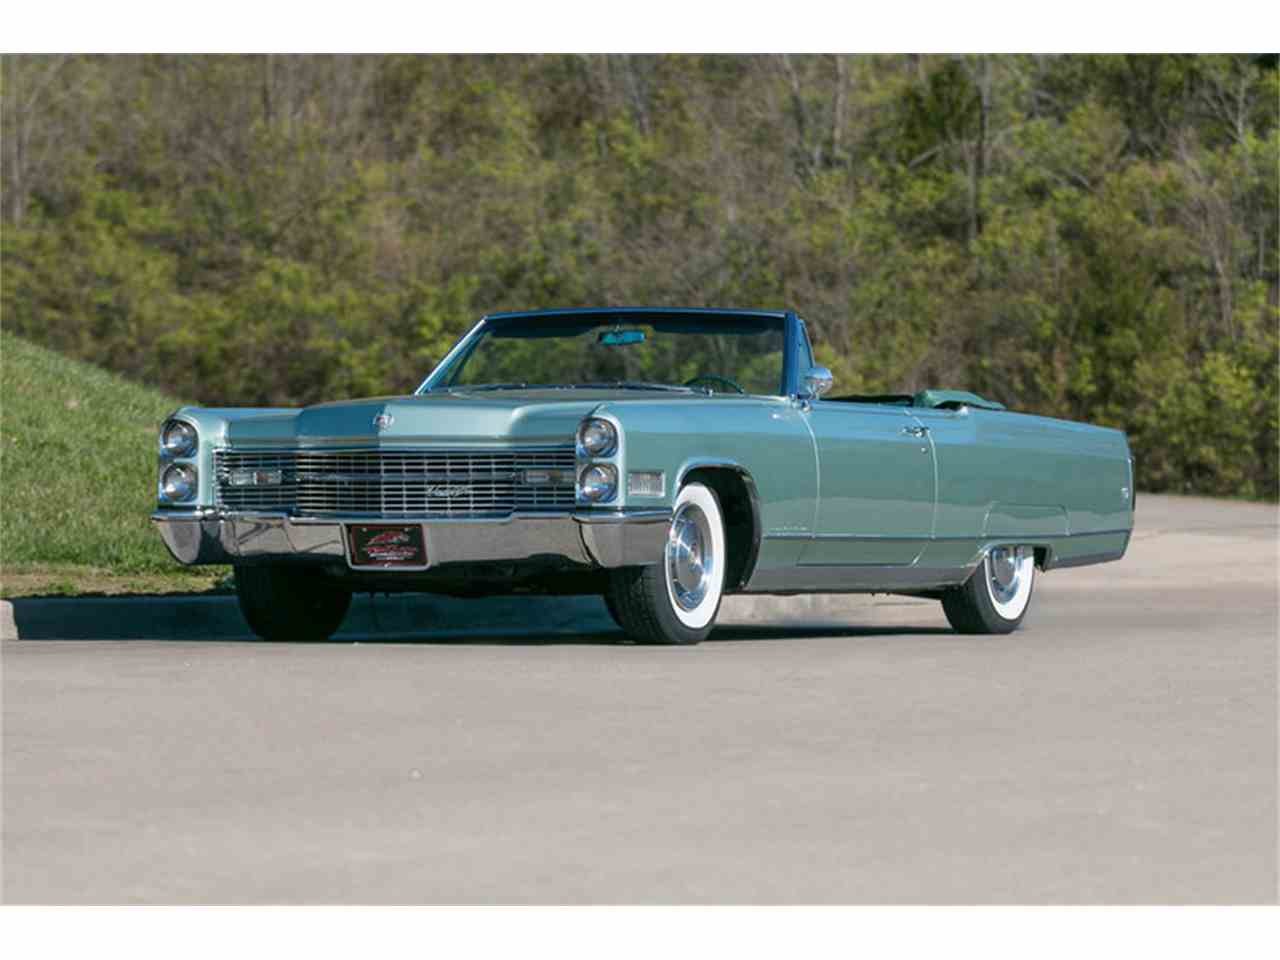 Large Picture of '66 Cadillac Eldorado located in St. Charles Missouri Offered by Fast Lane Classic Cars Inc. - LSH1